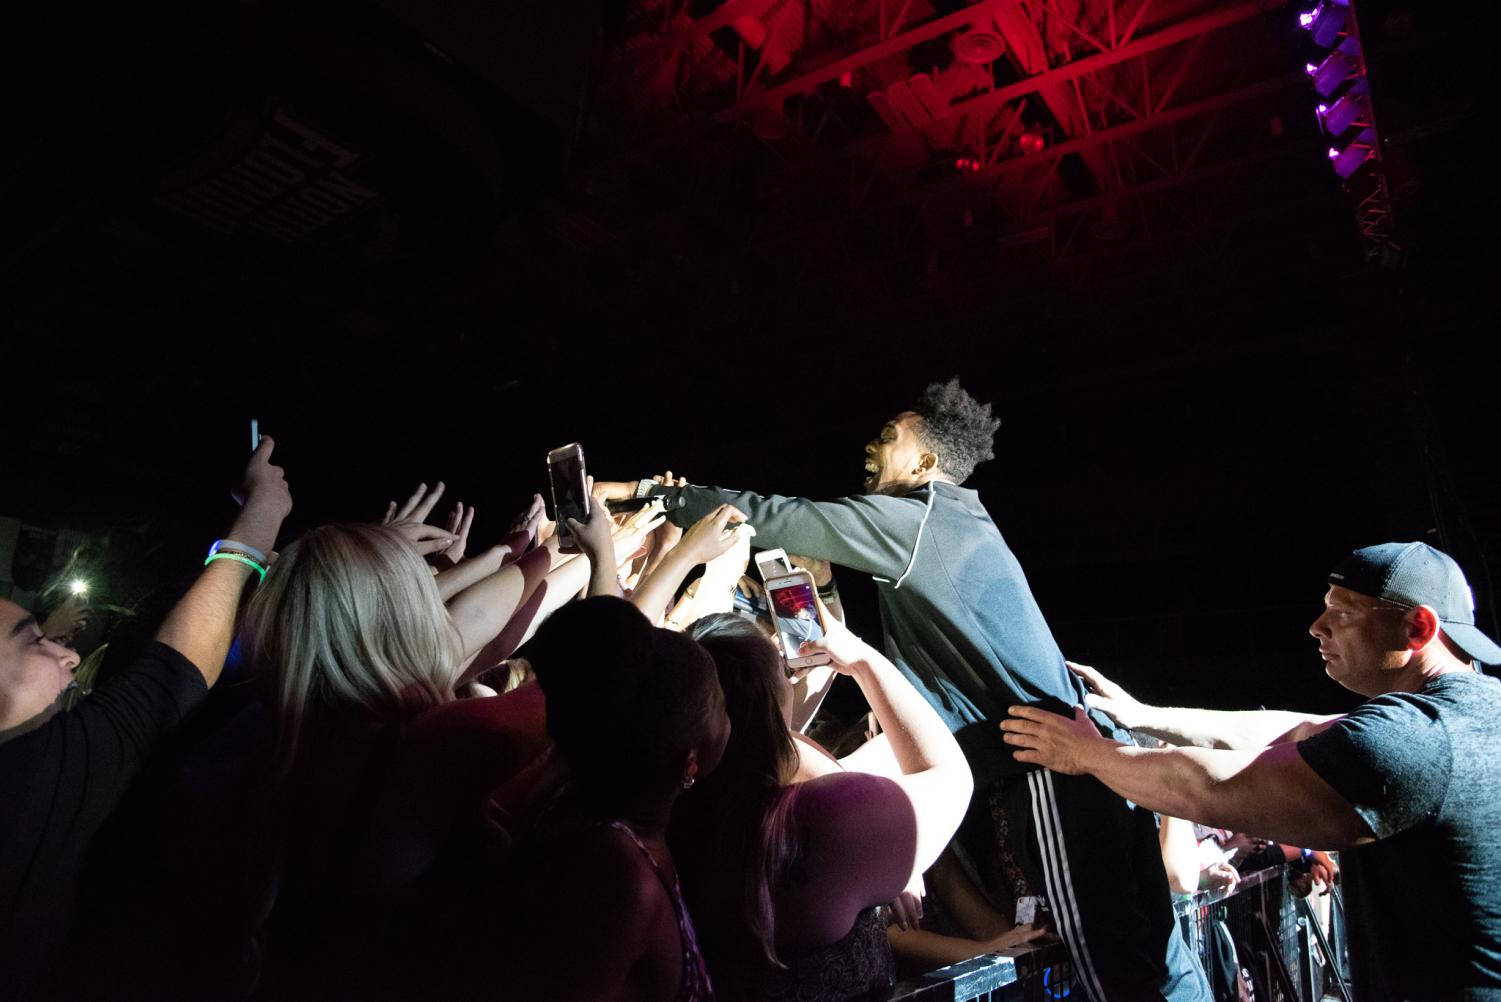 Desiigner+reaches+into+the+crowd%0APhoto+by+Lili+Weinstein